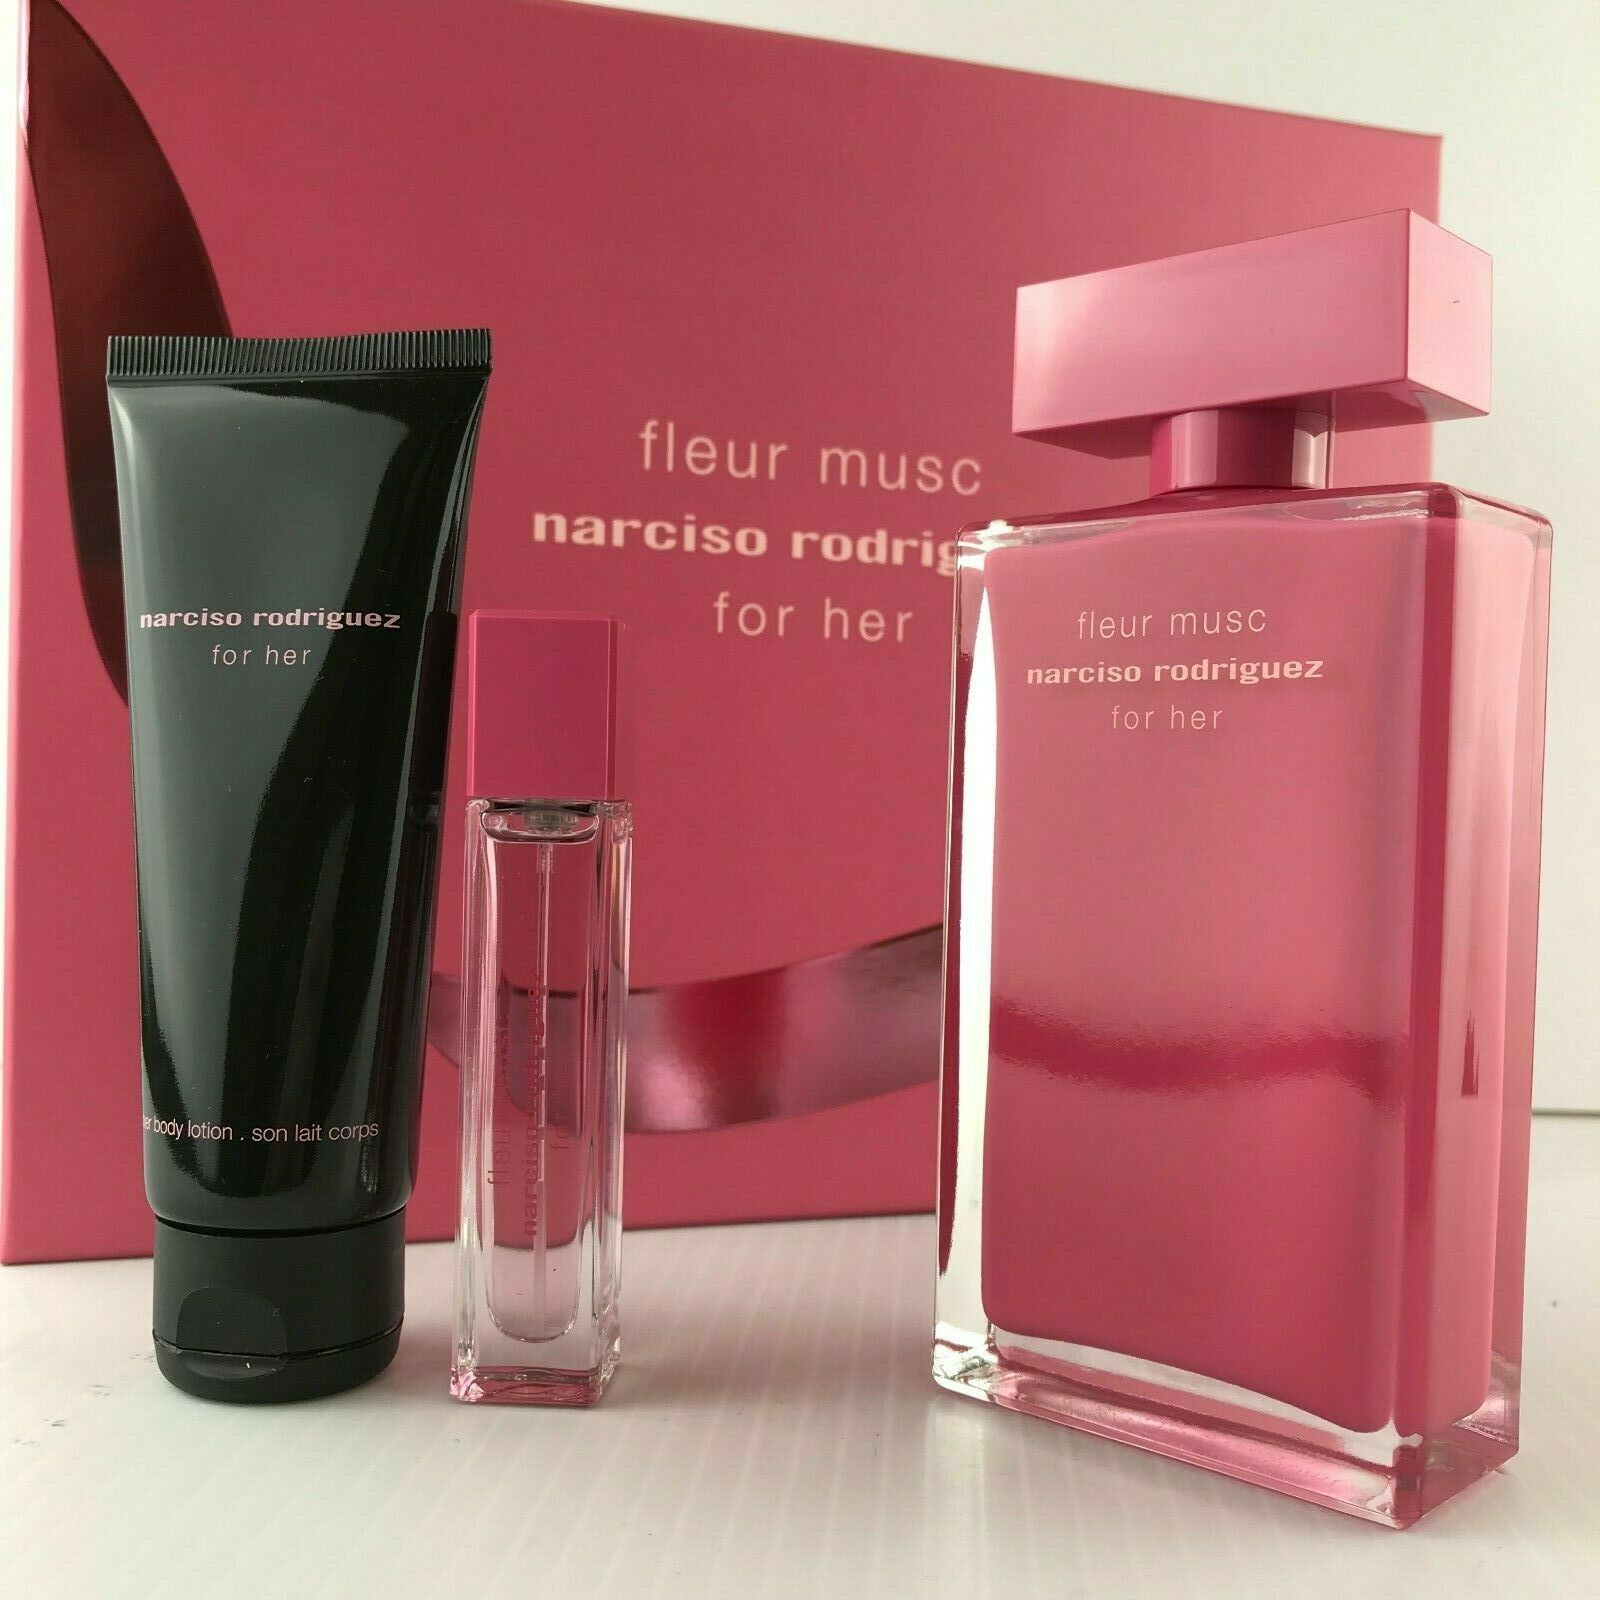 Details about NARCISO RODRIGUEZ FLEUR MUSC Her 3PC SET EDT SPRAY 3 3 +  LOTION 2 5 OZ + MINI